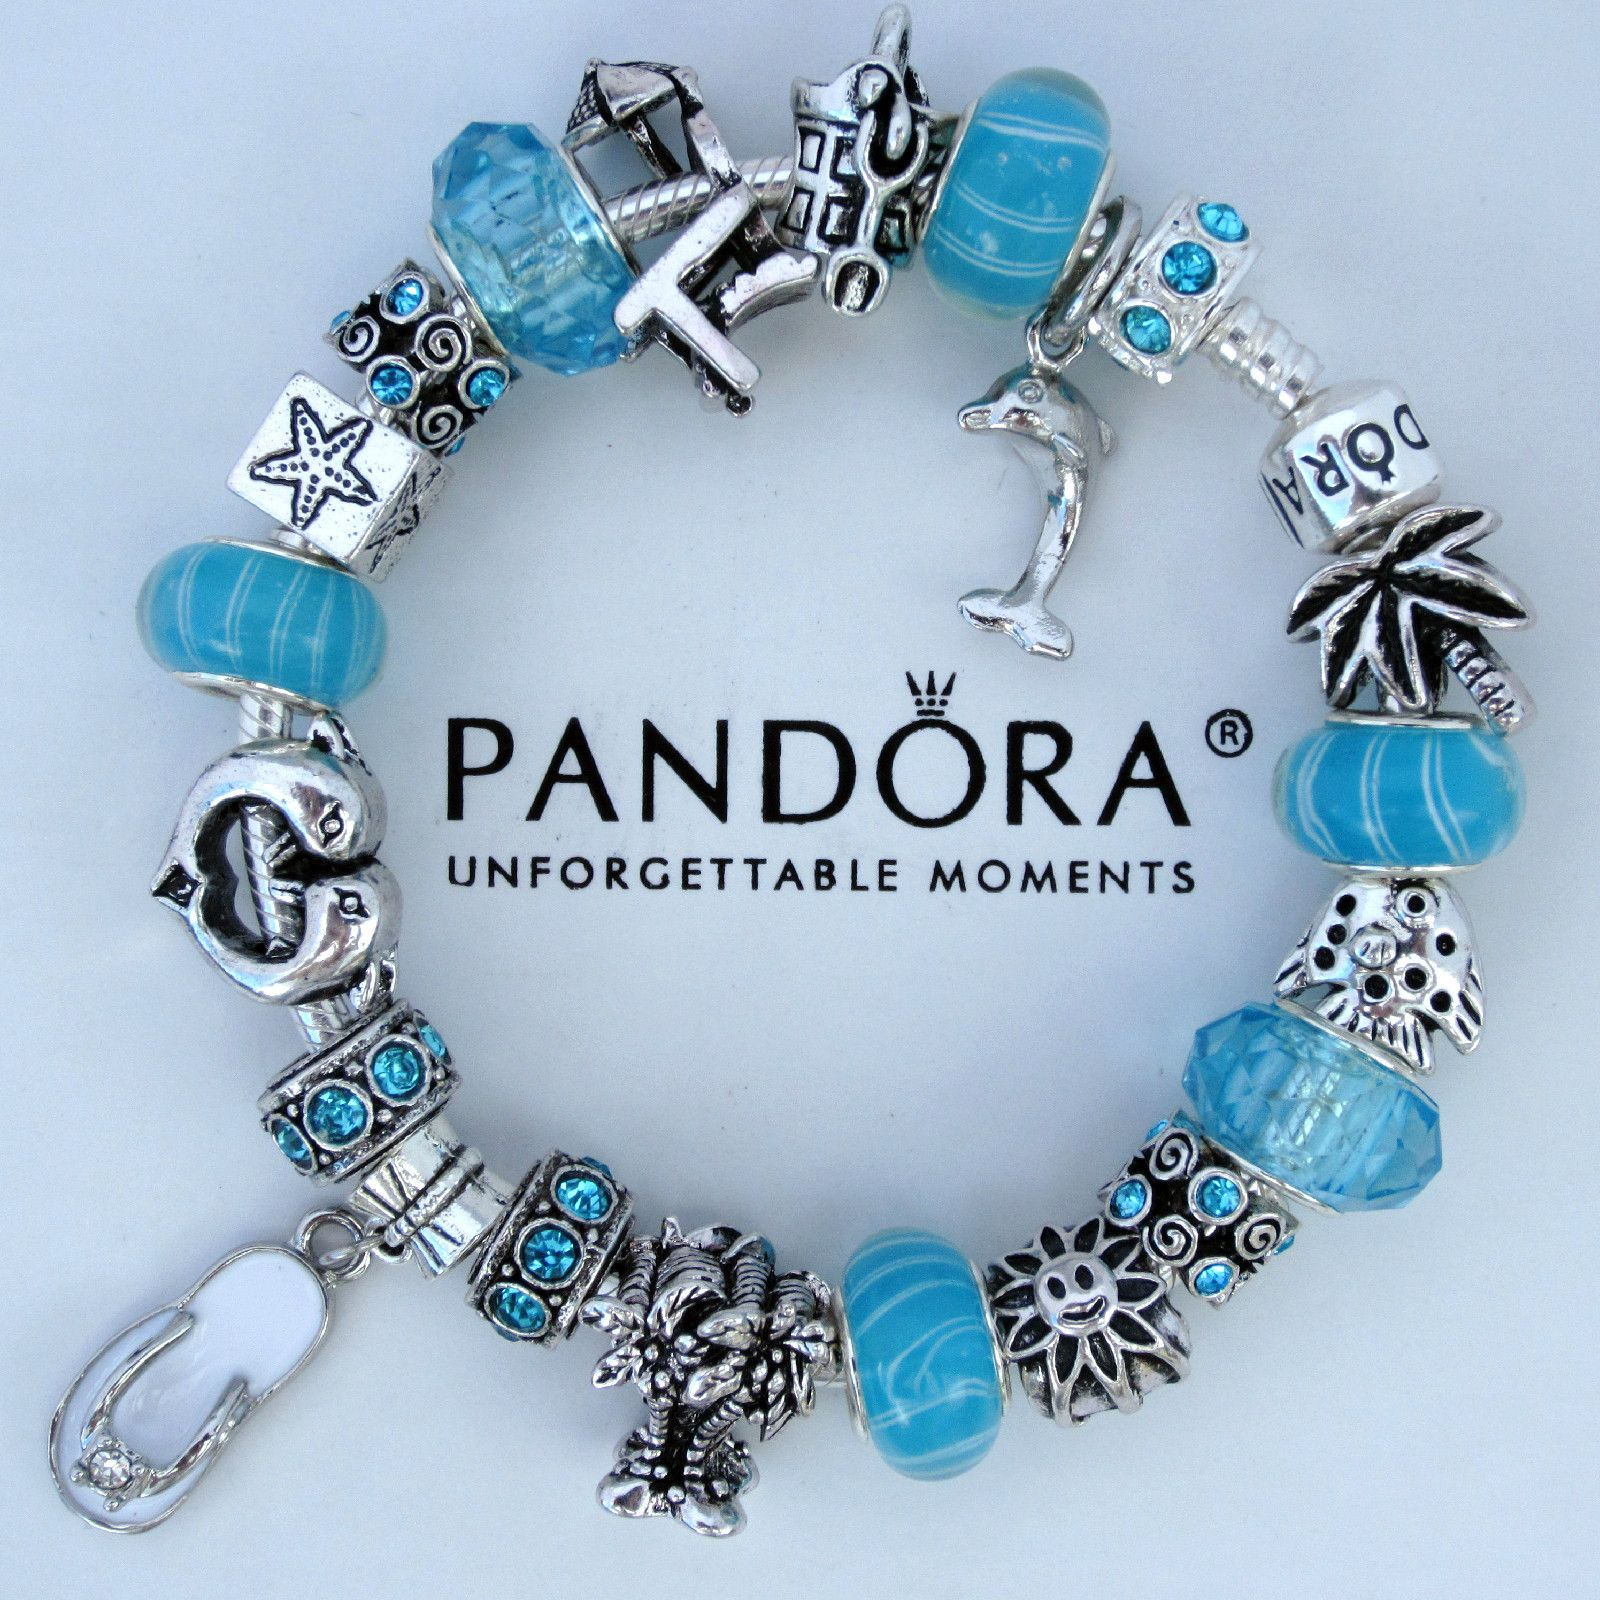 charms rings bracelet charm jewelry c pandora collection